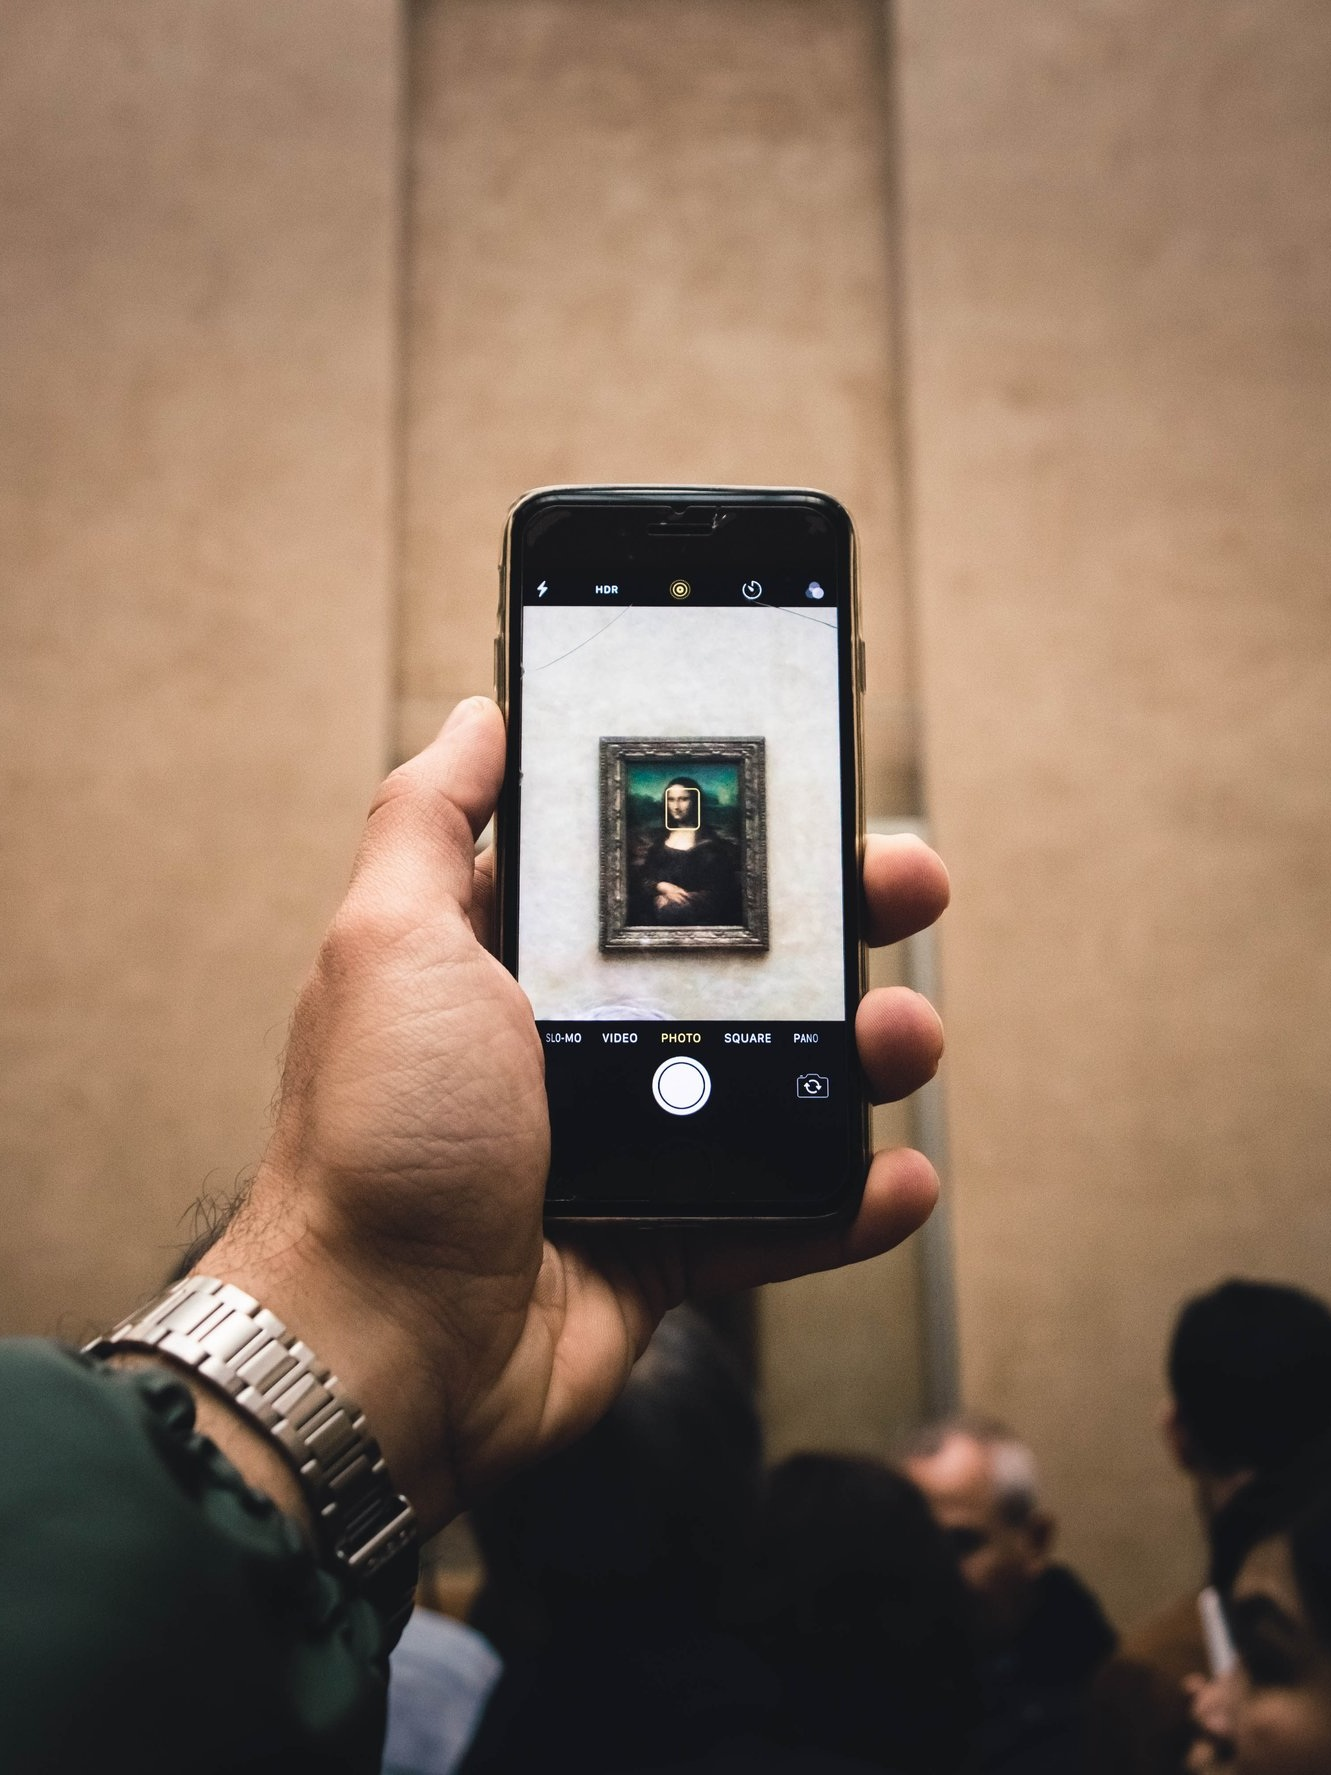 - HORDES of people cram into that room to take pictures. Many look only at their camera, phone or iPad screens and never actually look at the painting itself. It is loud, chaotic, and stinks with the sweat of thousands of foreign tourists.